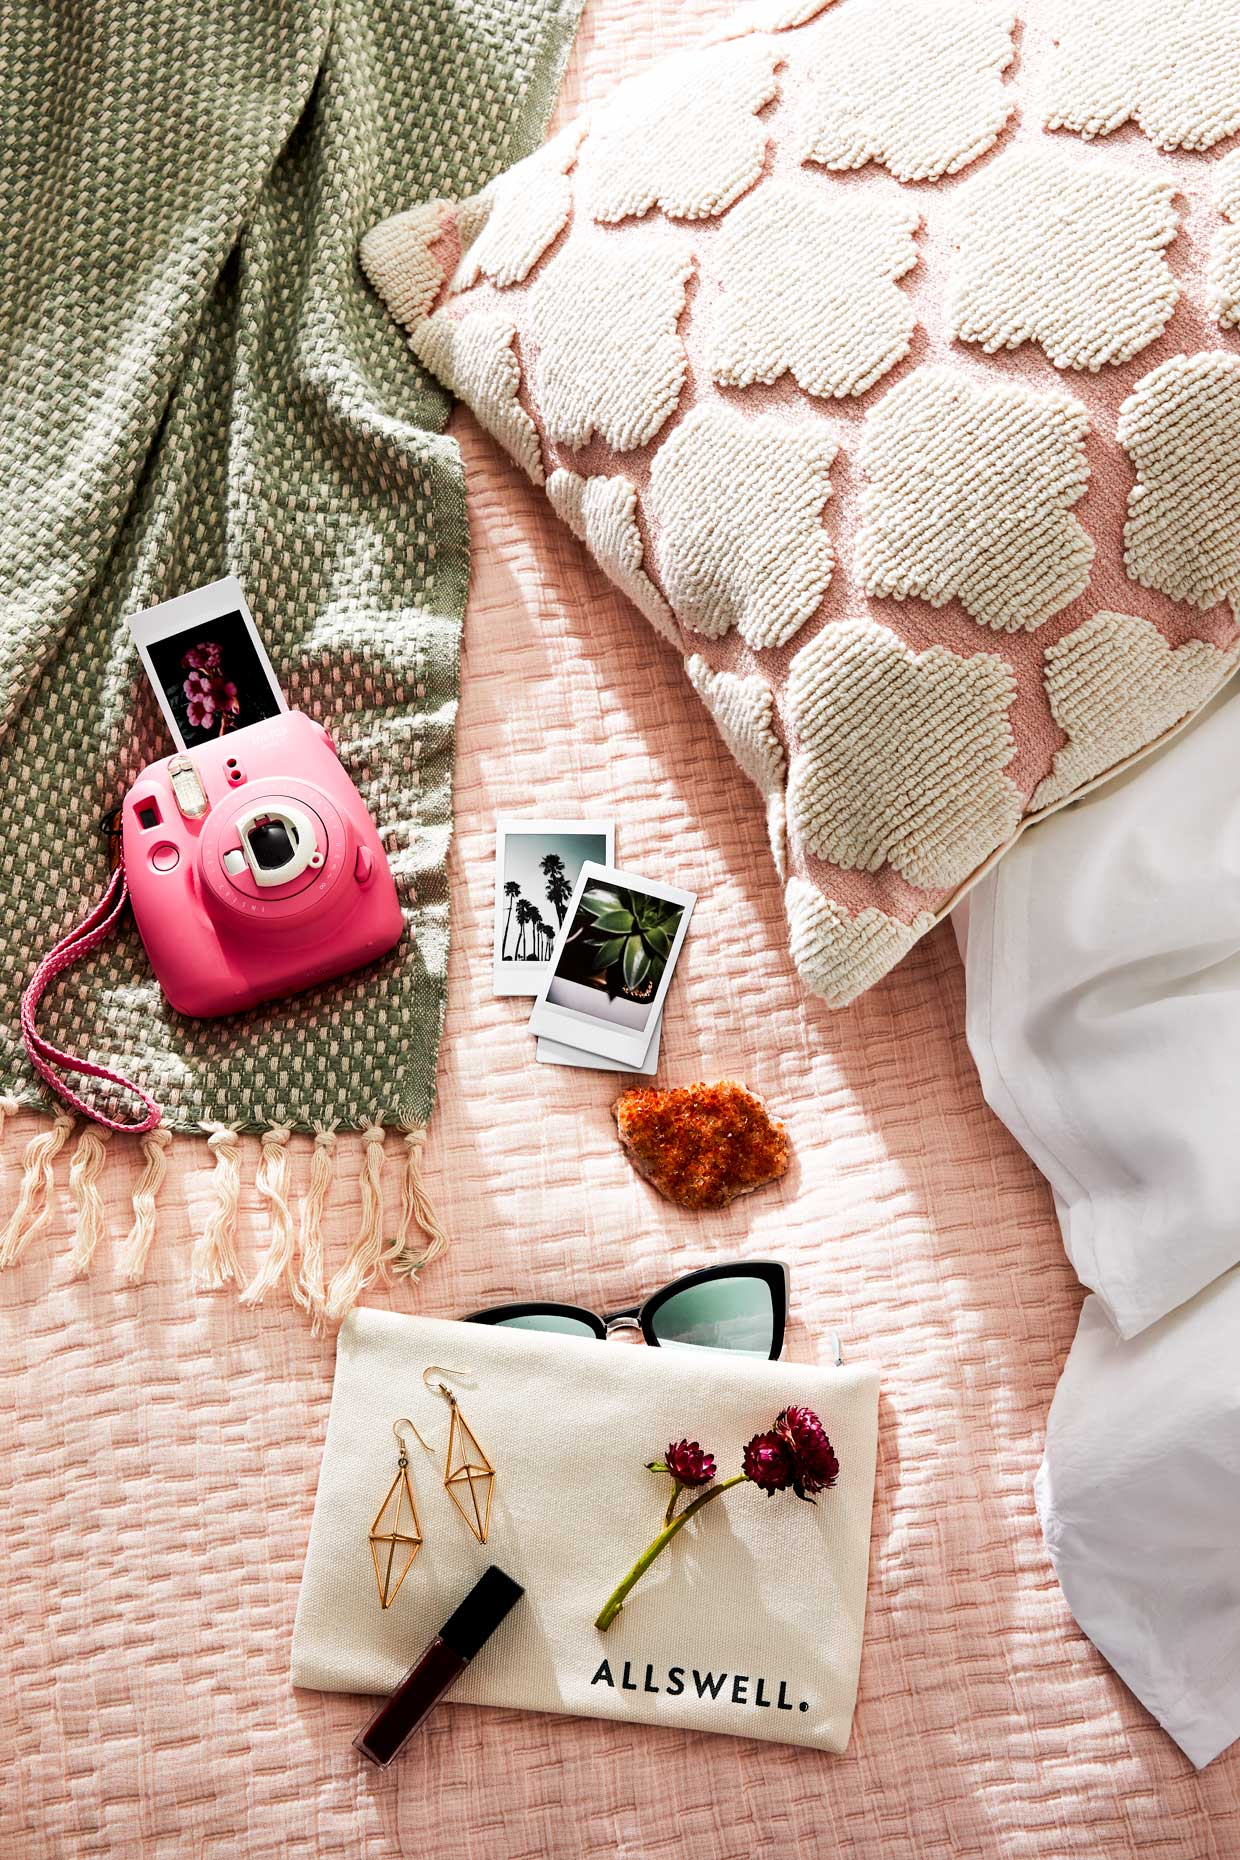 Allswell-Glam-Bedding-Instax-Polaroid-Camera-Jet-Still-Life-Photographer-Photography-Rick-Holbrook